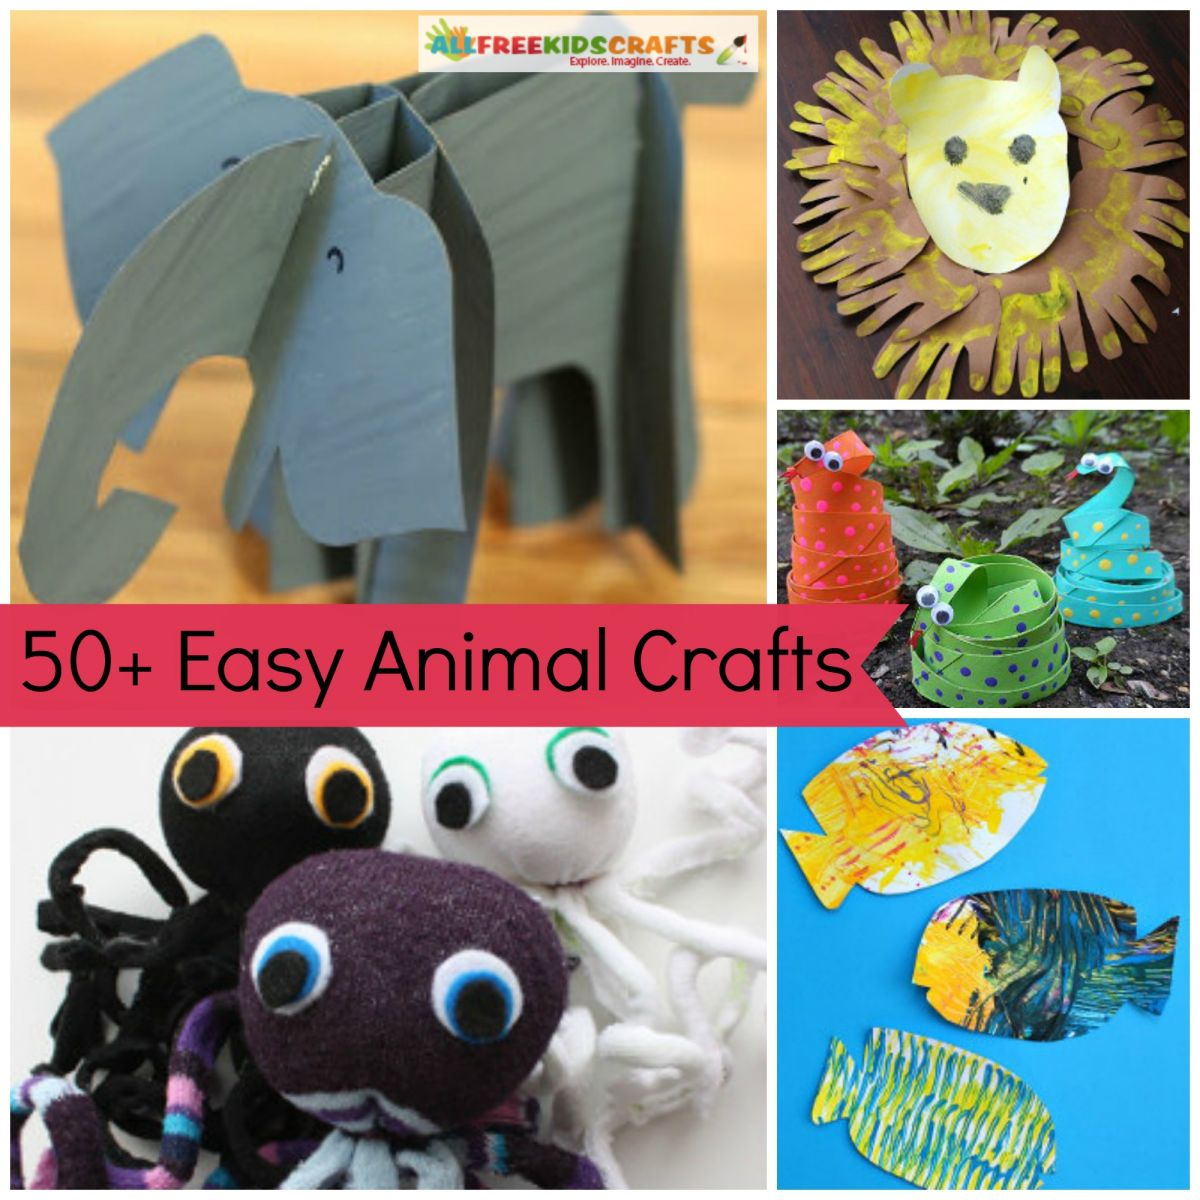 61 Preschool Animal Crafts And More